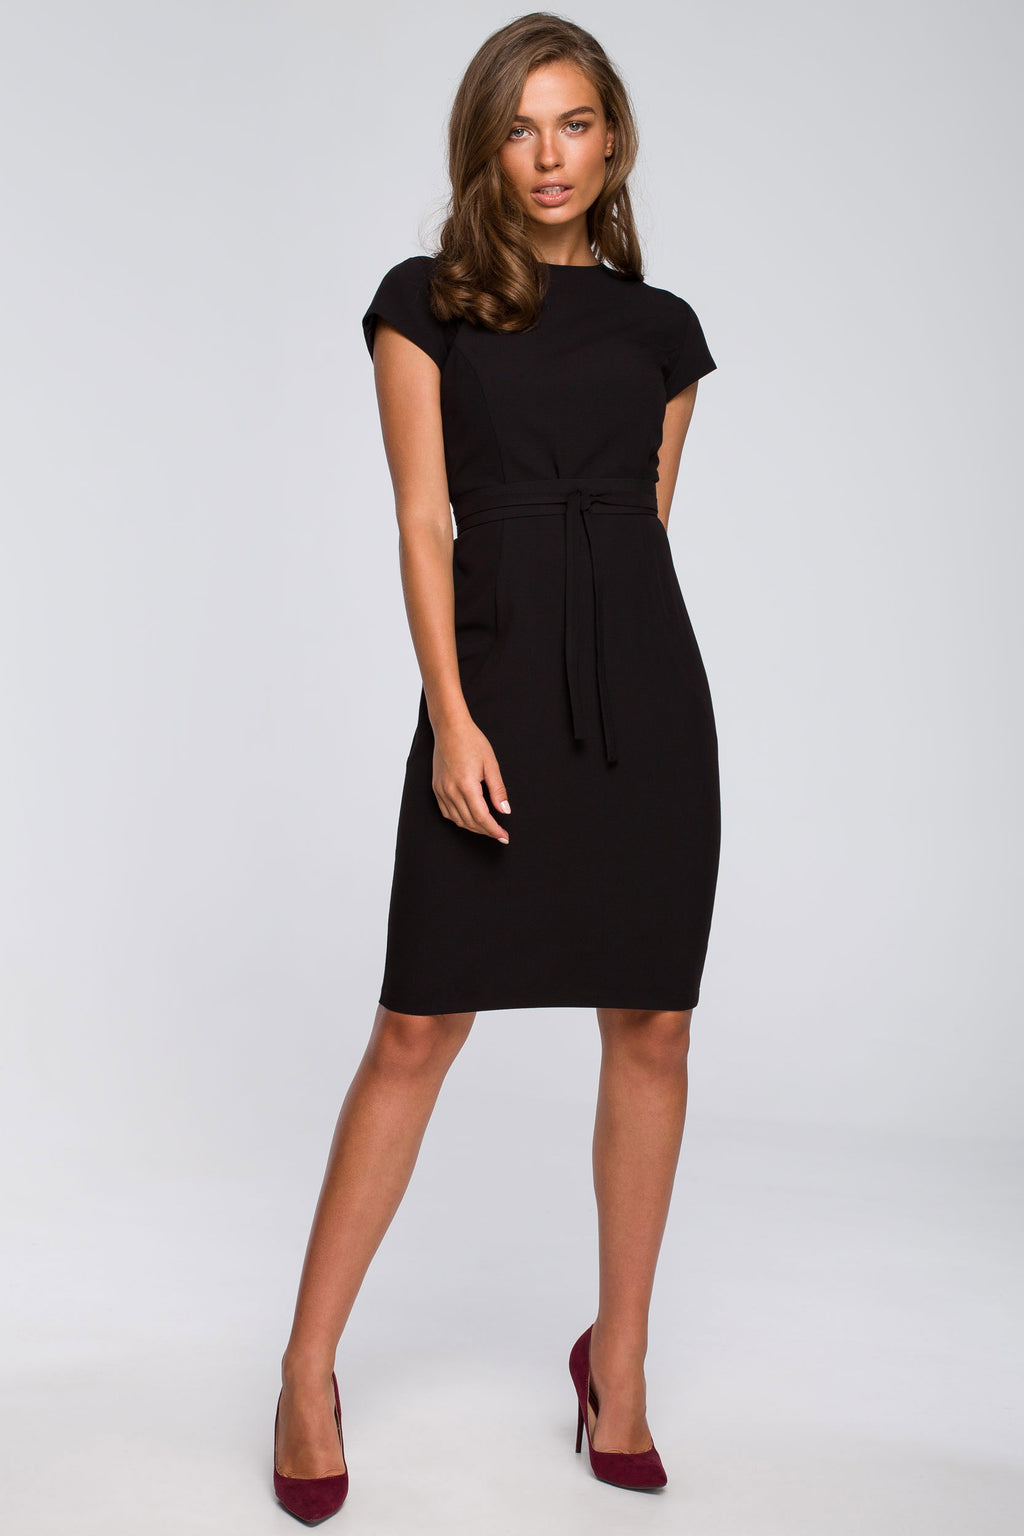 Black Pencil Dress With A Tied Belt - So Chic Boutique